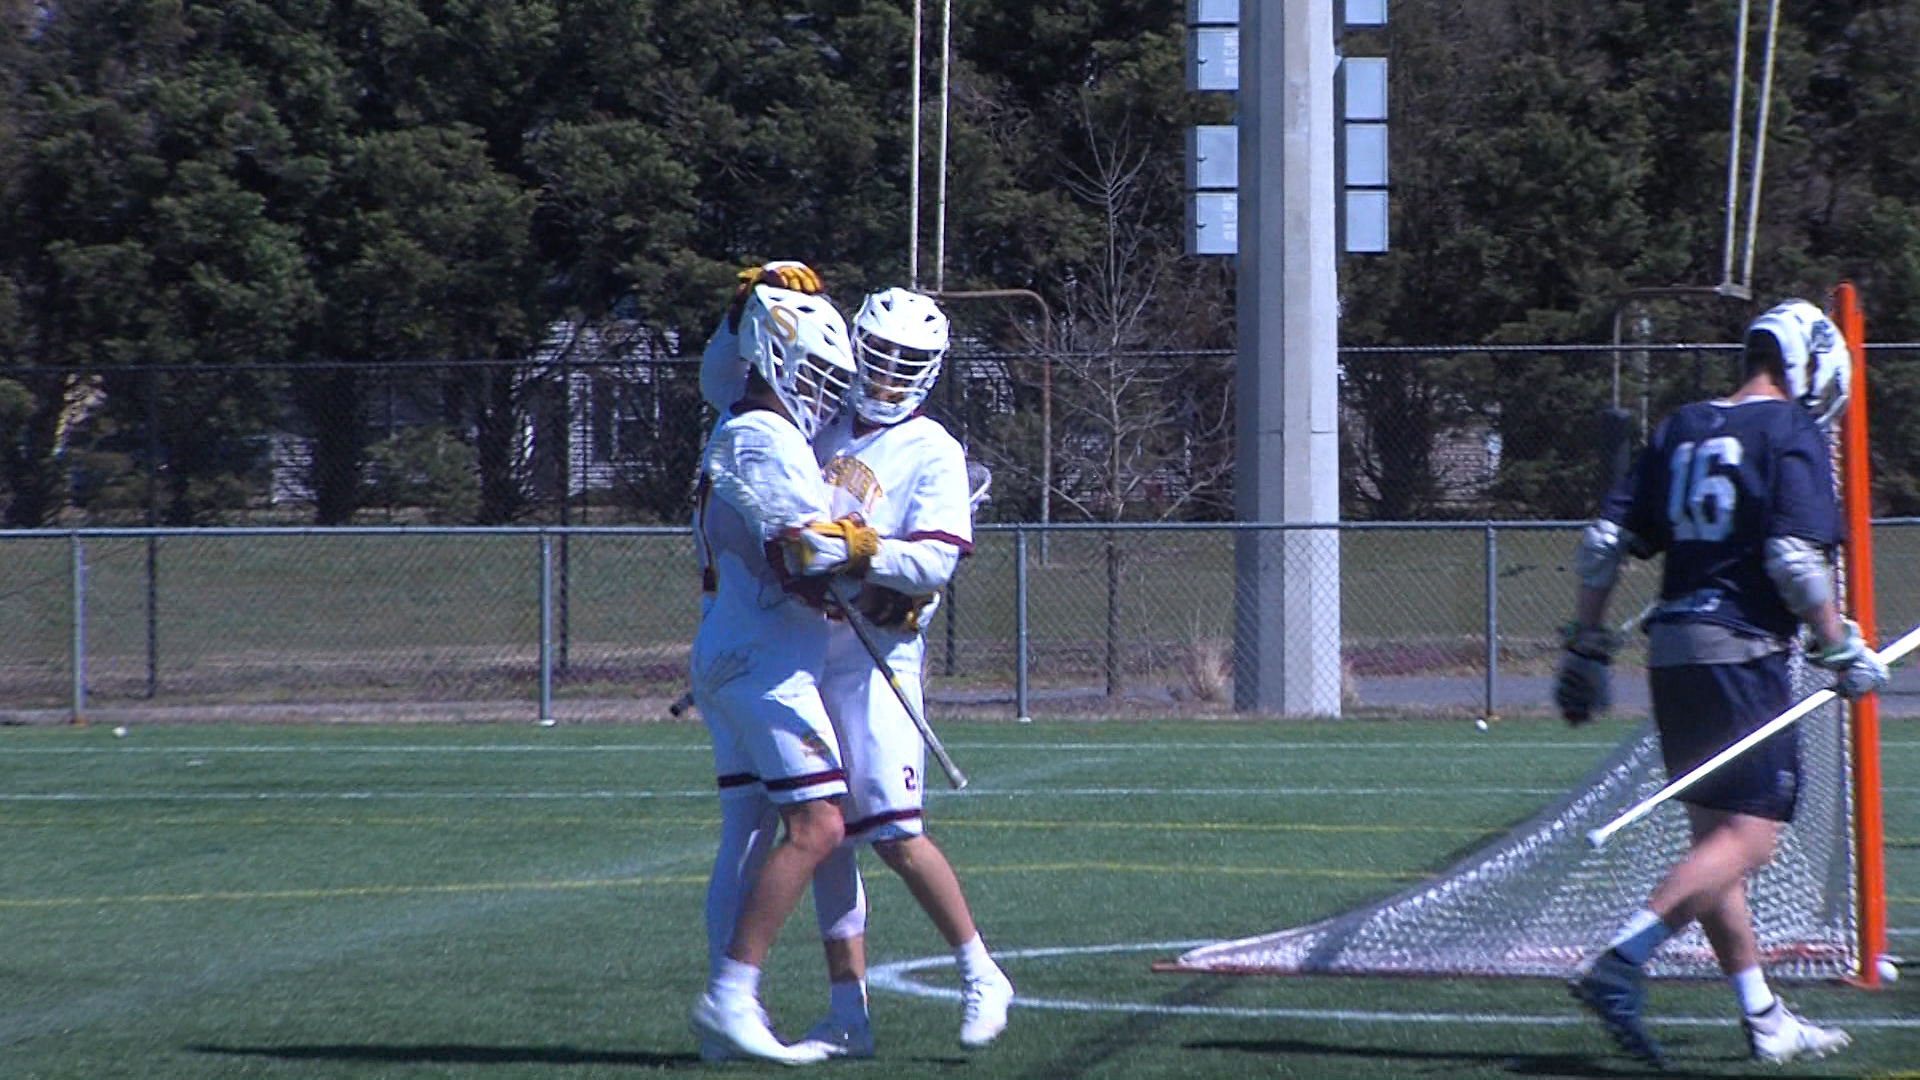 Seagull Lacrosse Continues to Rock and Roll